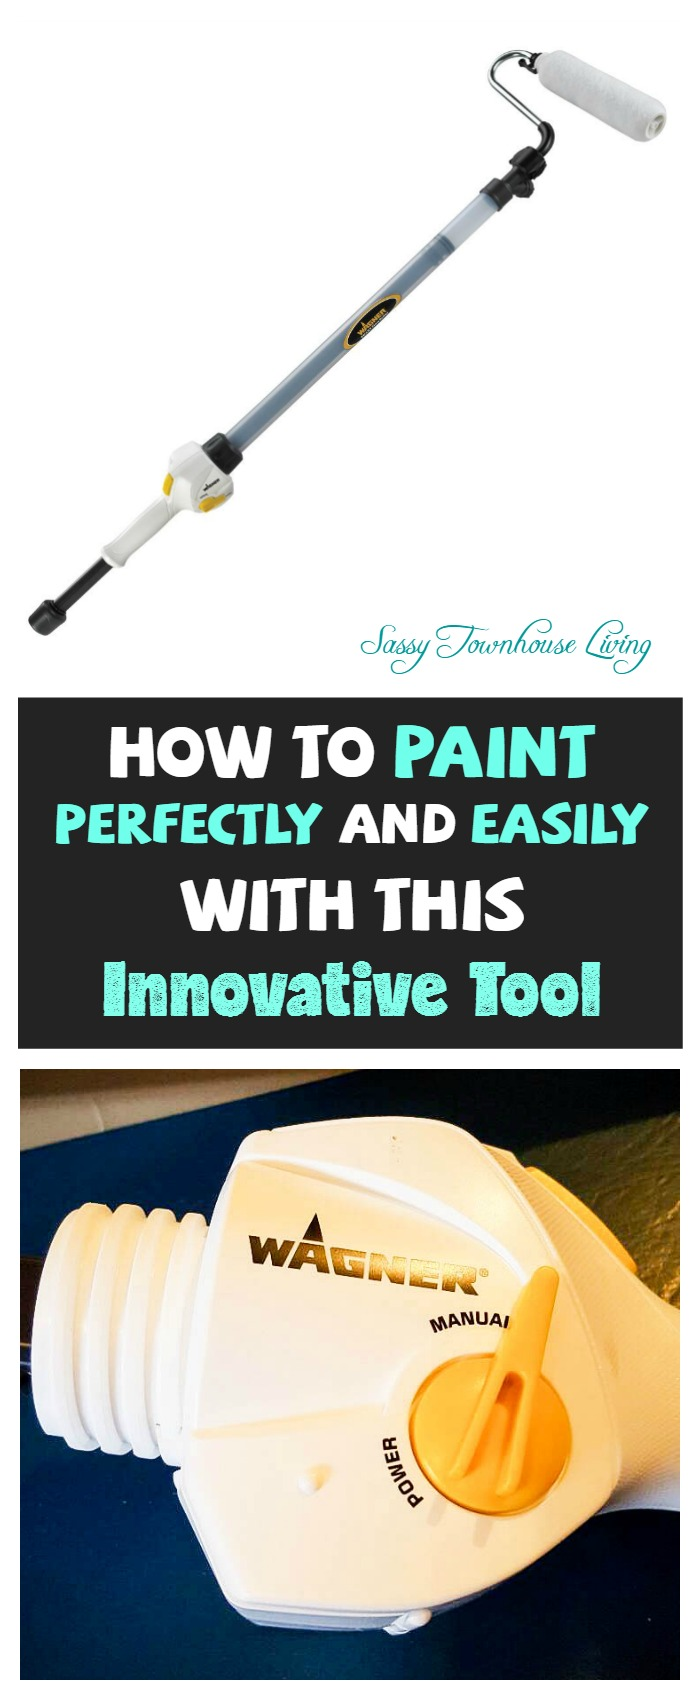 How To Paint Perfectly And Easily With This Innovative Tool - Sassy Townhouse Living